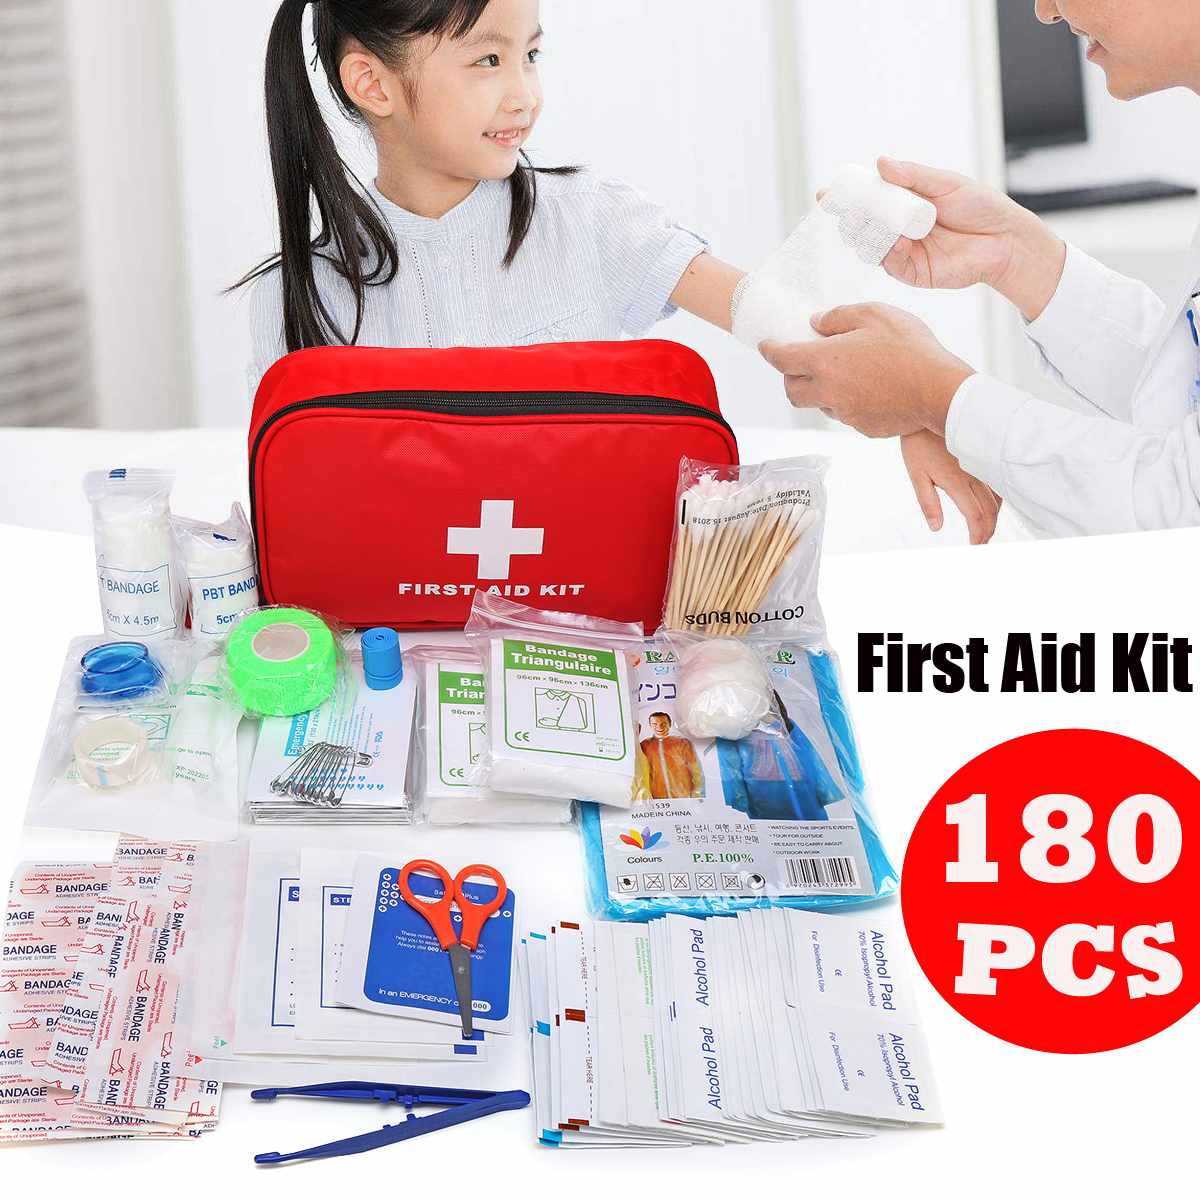 New 180 In 1 First Aid Kit Portable Household Outdoor Safe Car First Aid Bag Kit For Home Office Camping Emergency Survival Kit